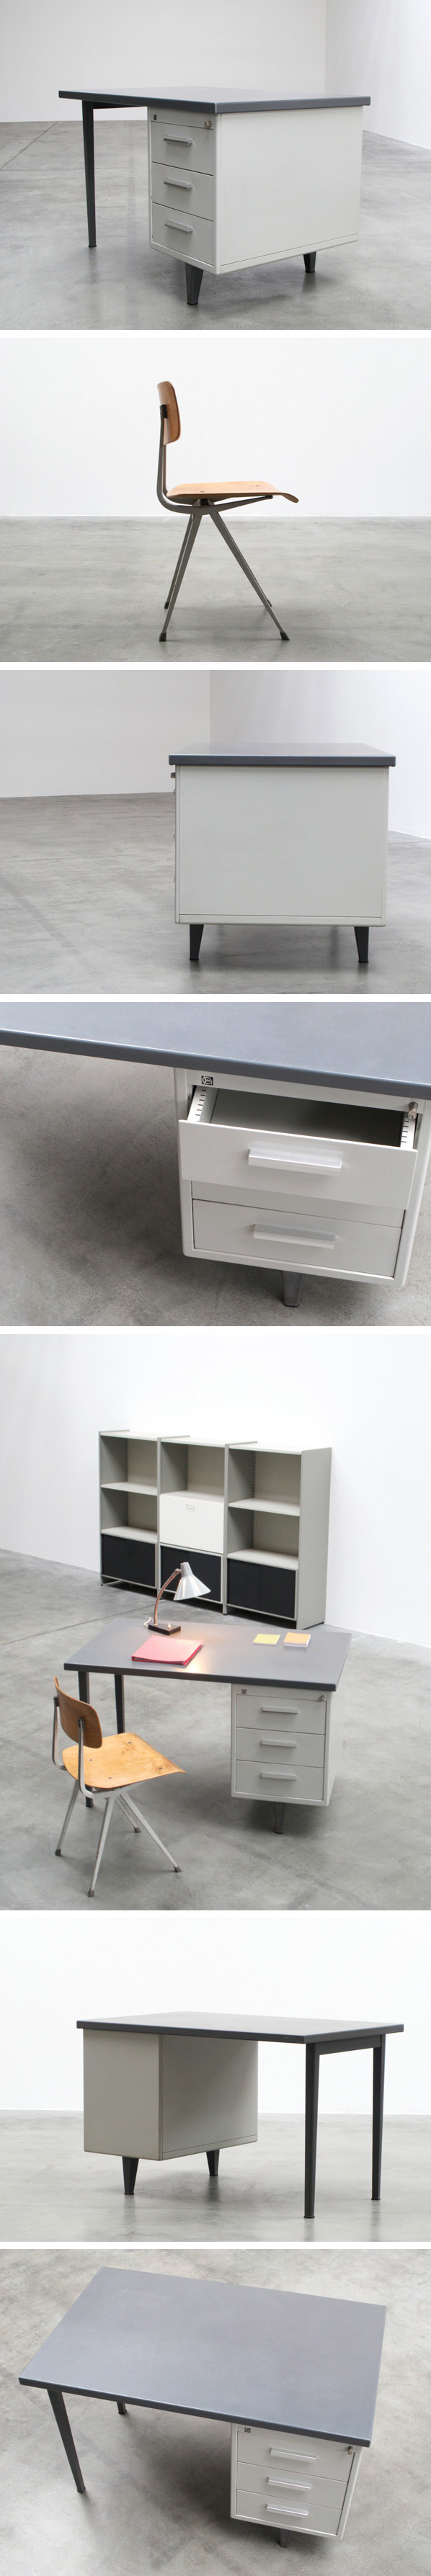 Andre Cordemeijer 7800 Industrial desk for Gispen Large